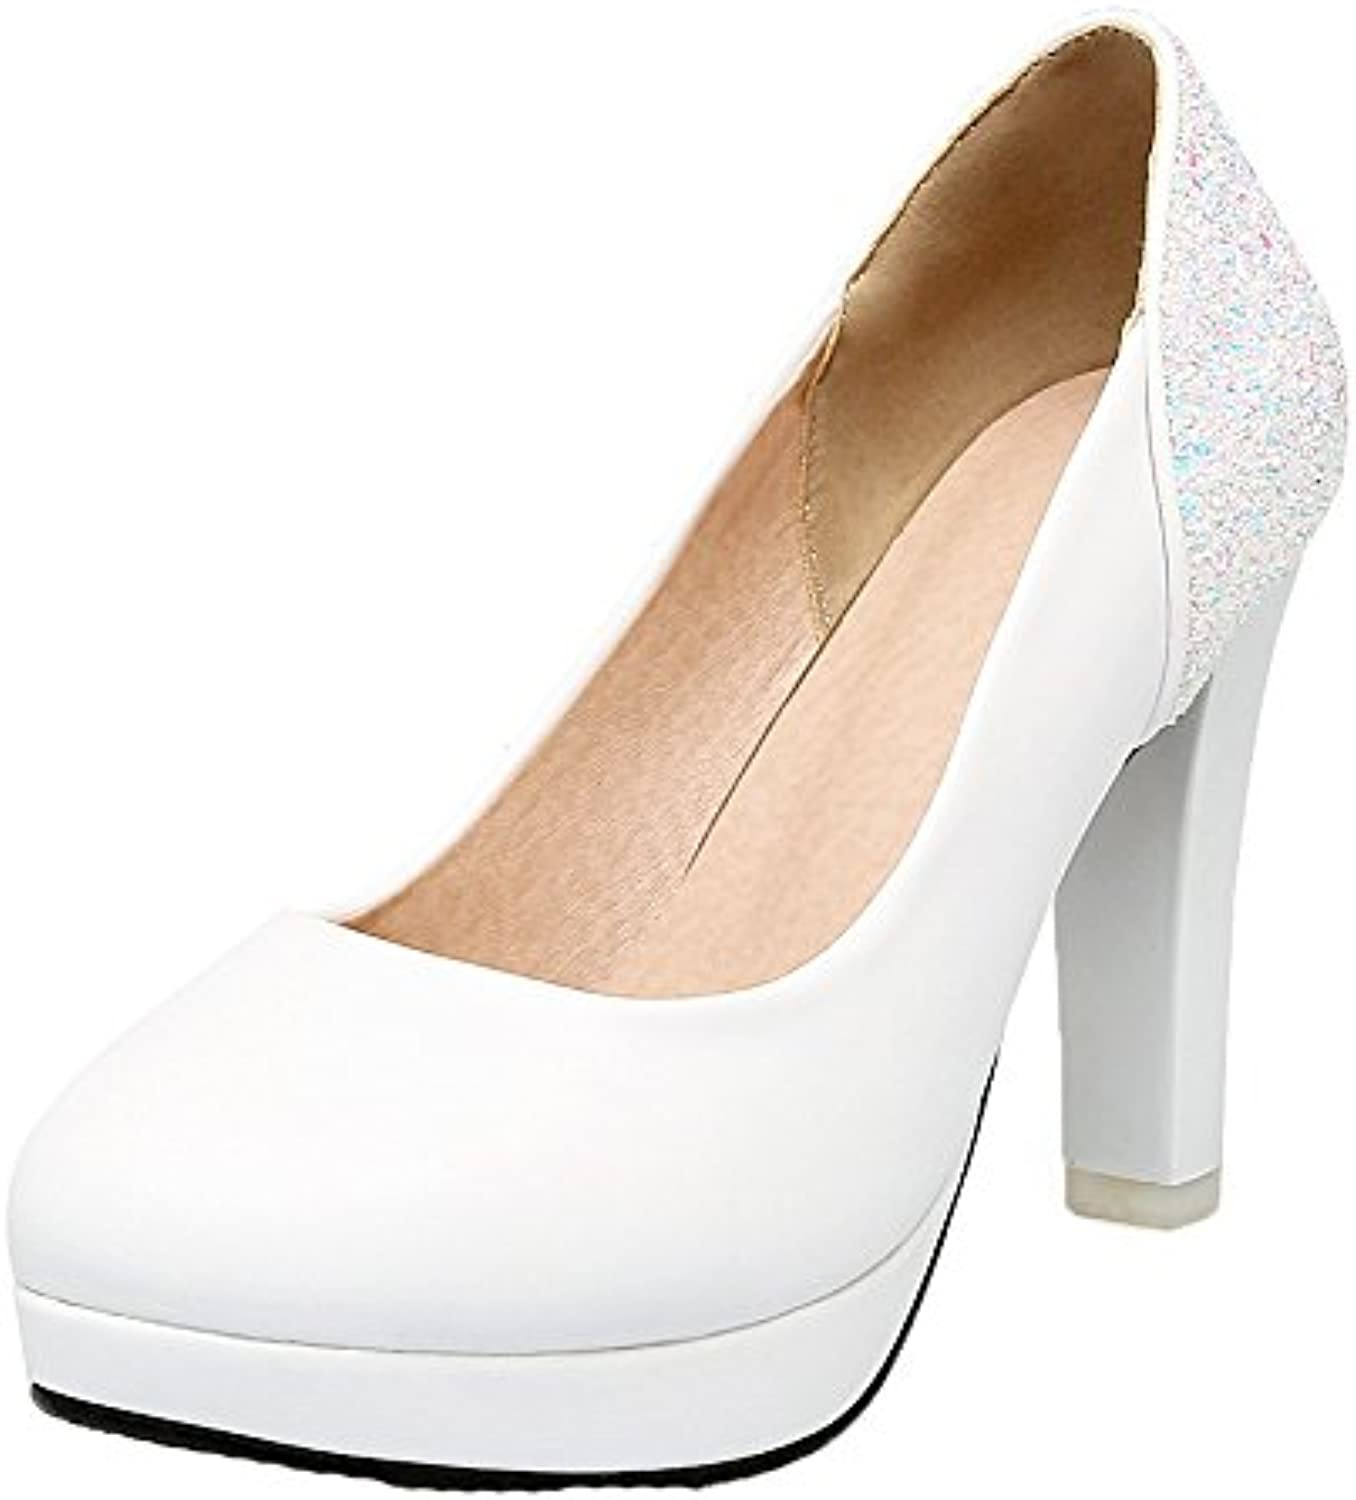 AmoonyFashion Women's PU High-Heels Round-Toe Solid Pull-On Pumps-shoes